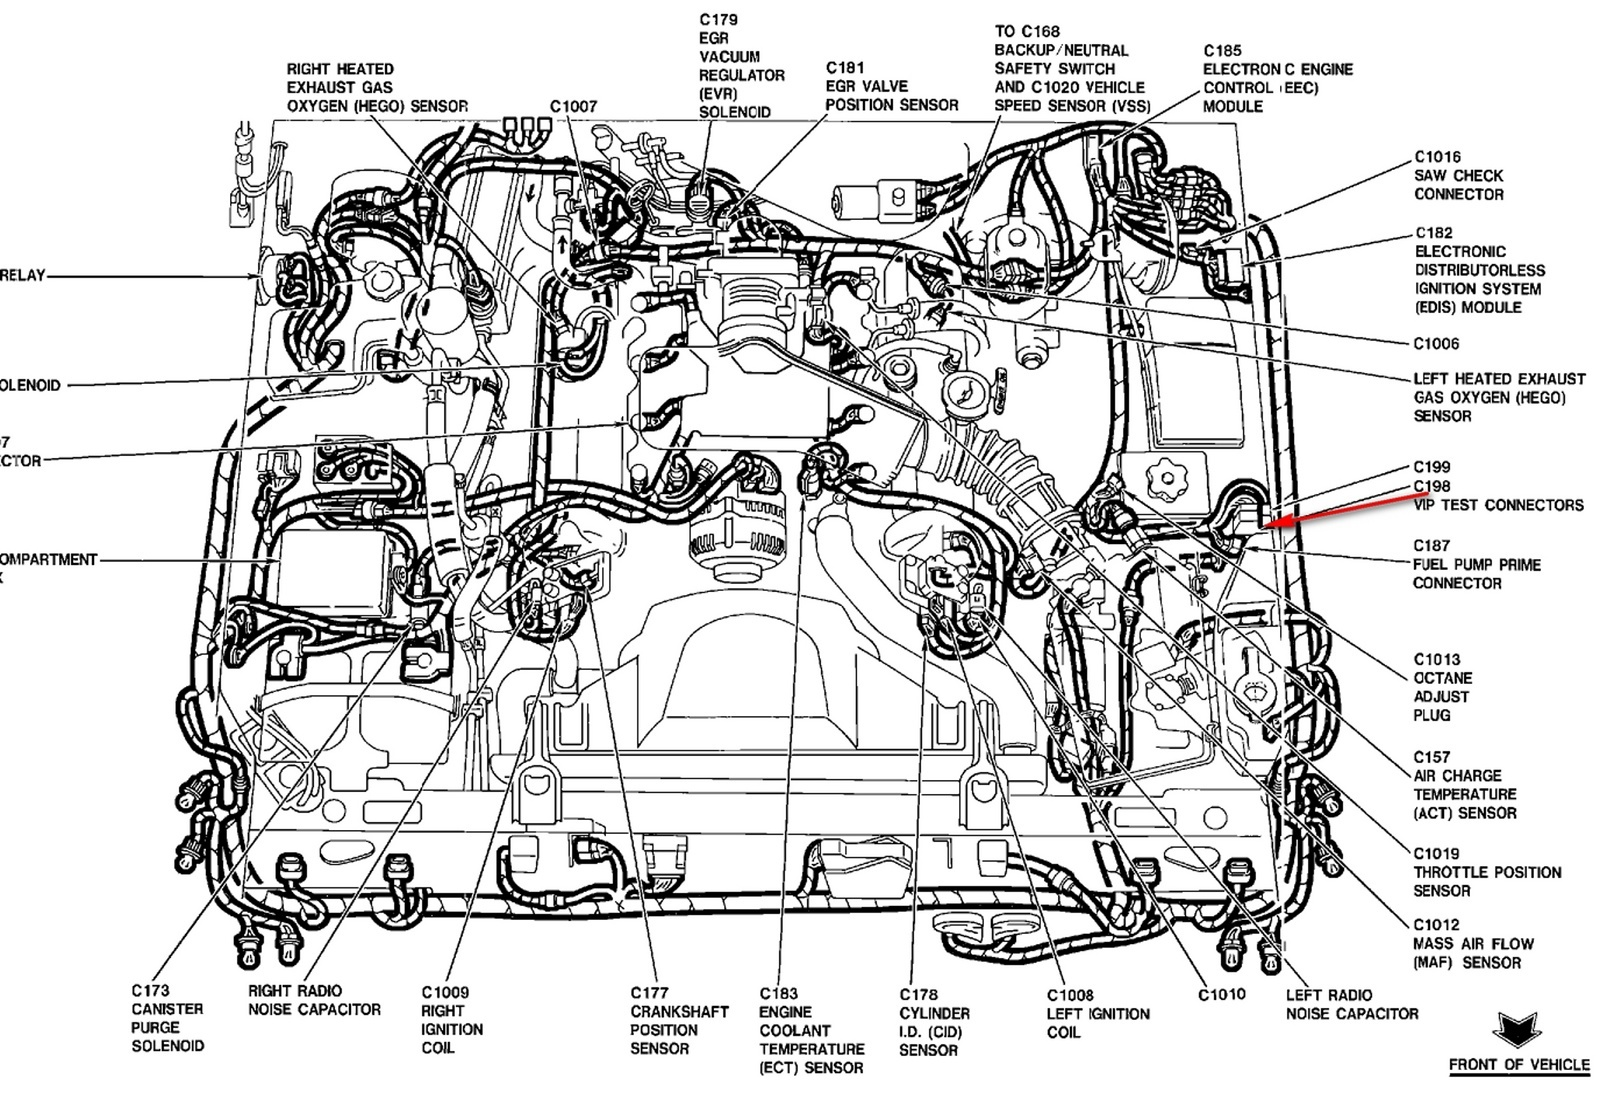 hight resolution of 1999 ford crown victoria engine diagram universal wiring diagram ford crown vic engine wire harness